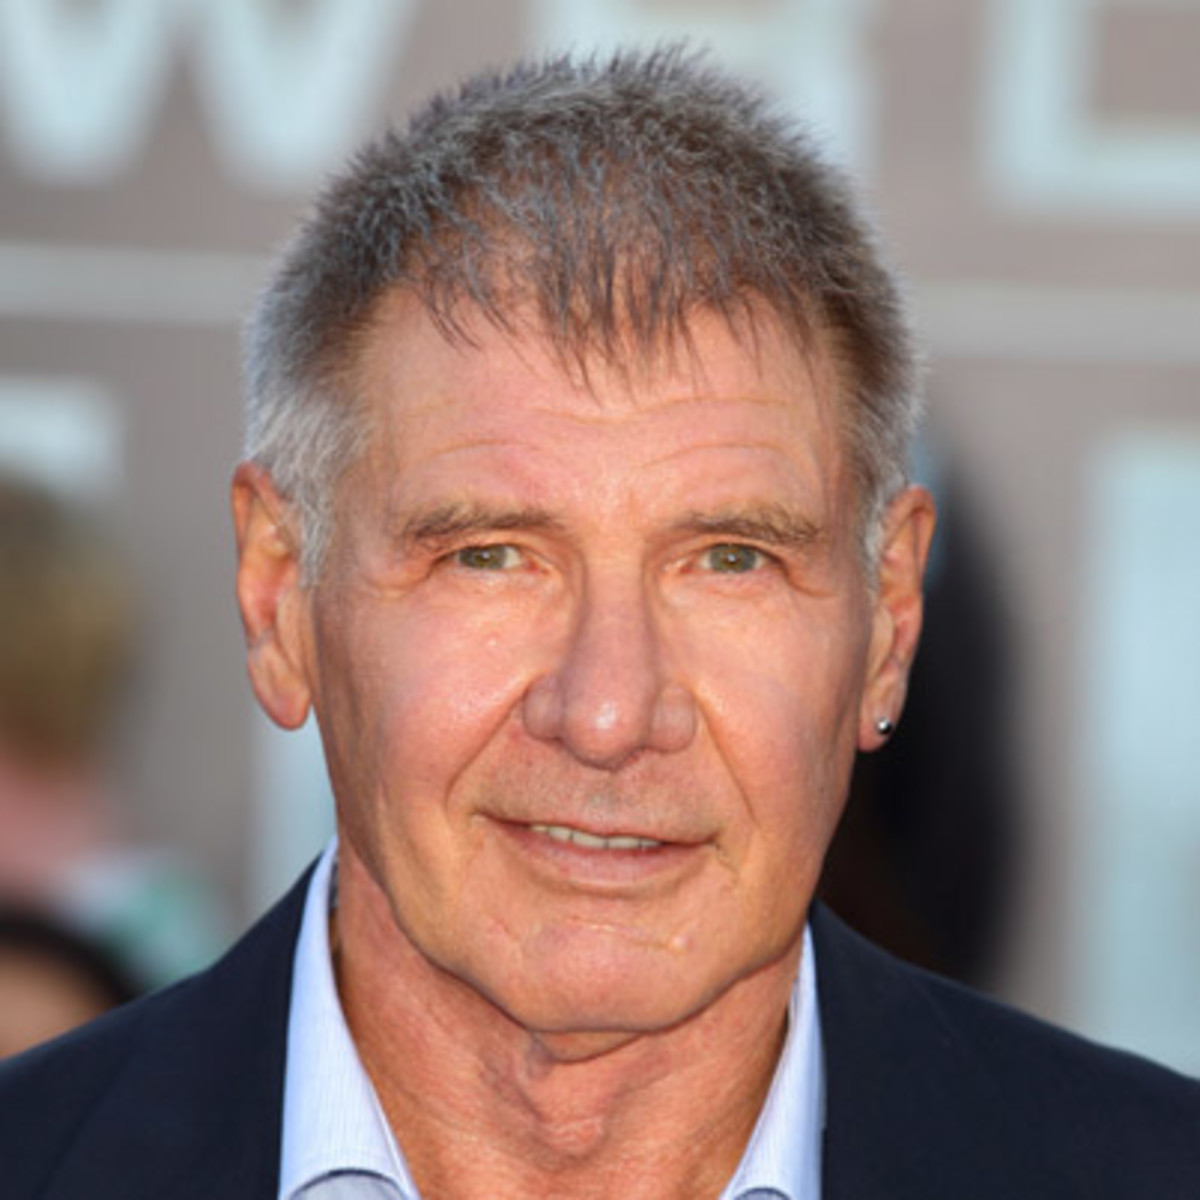 Who was harrison ford married to